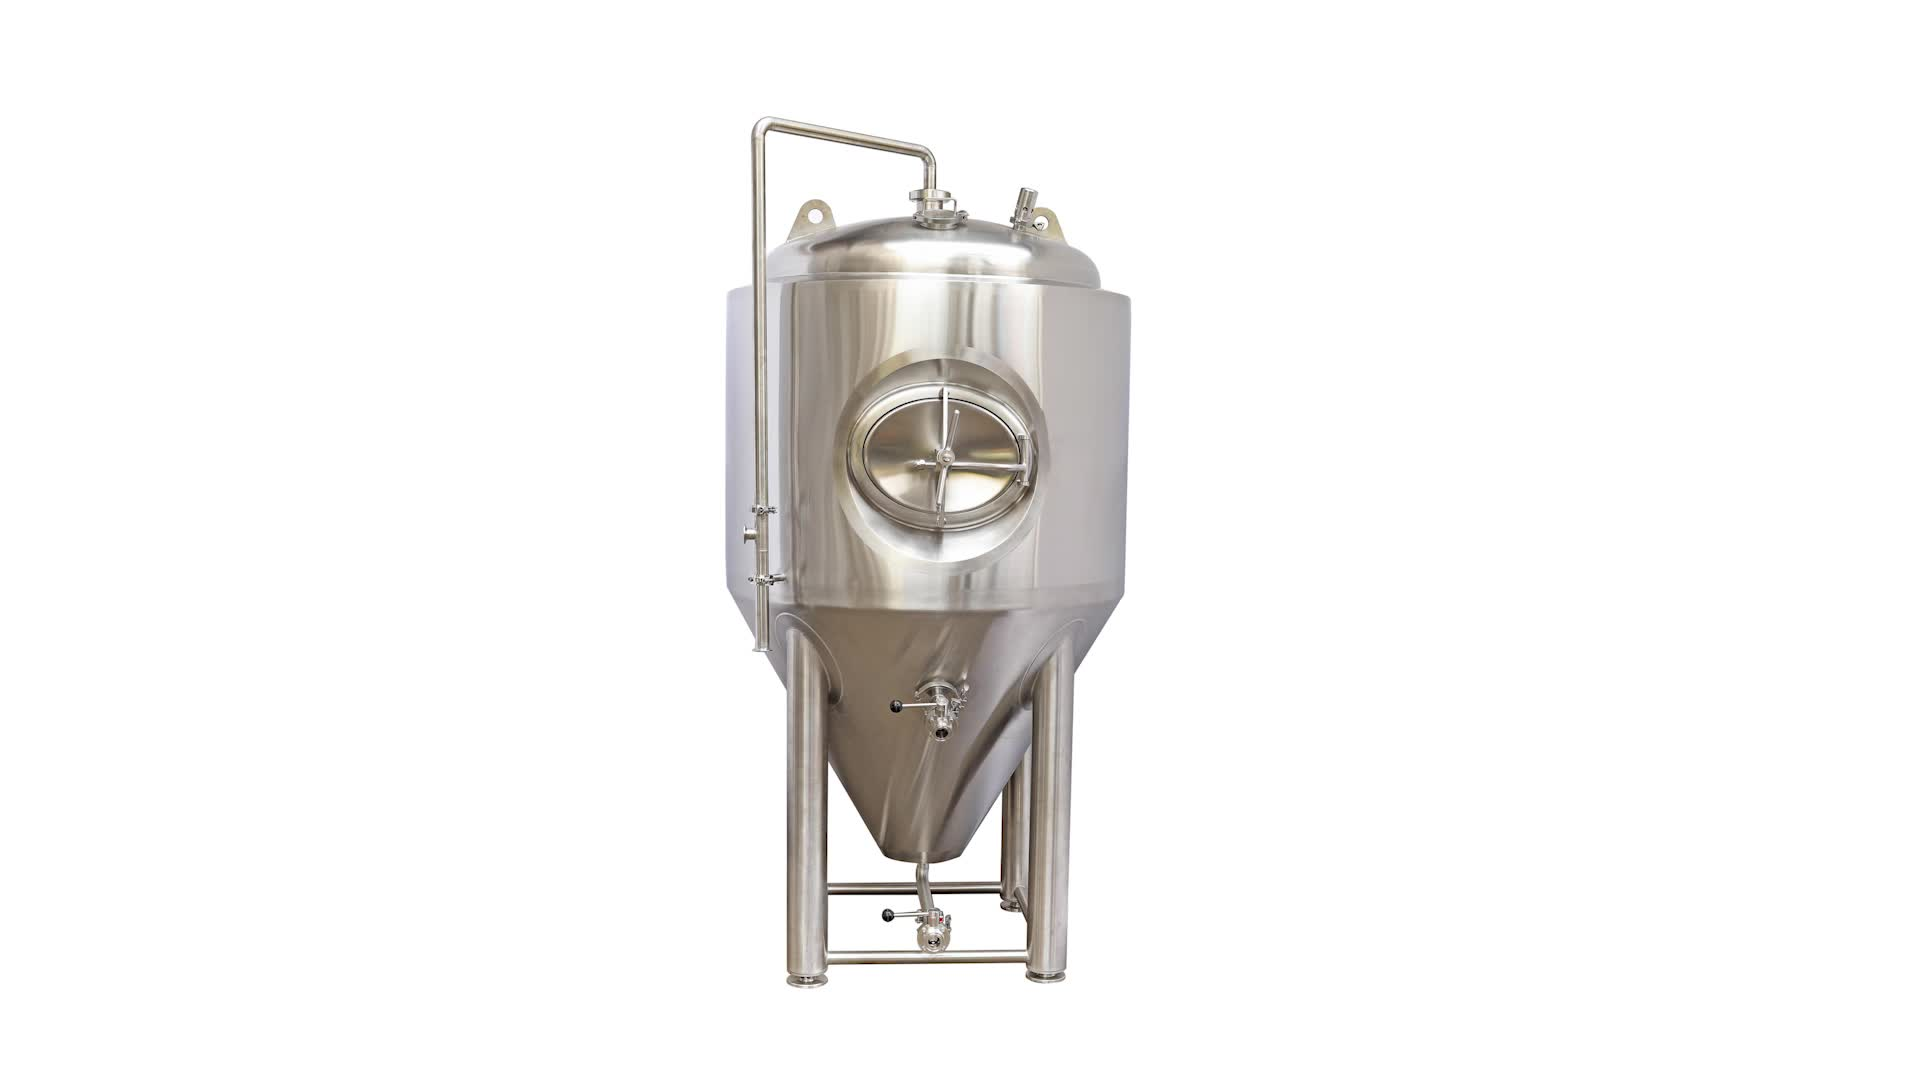 Stainless Steel Jacketed Fermenter Fermentor 300L 500L 1000L Beer Brewing Equipment